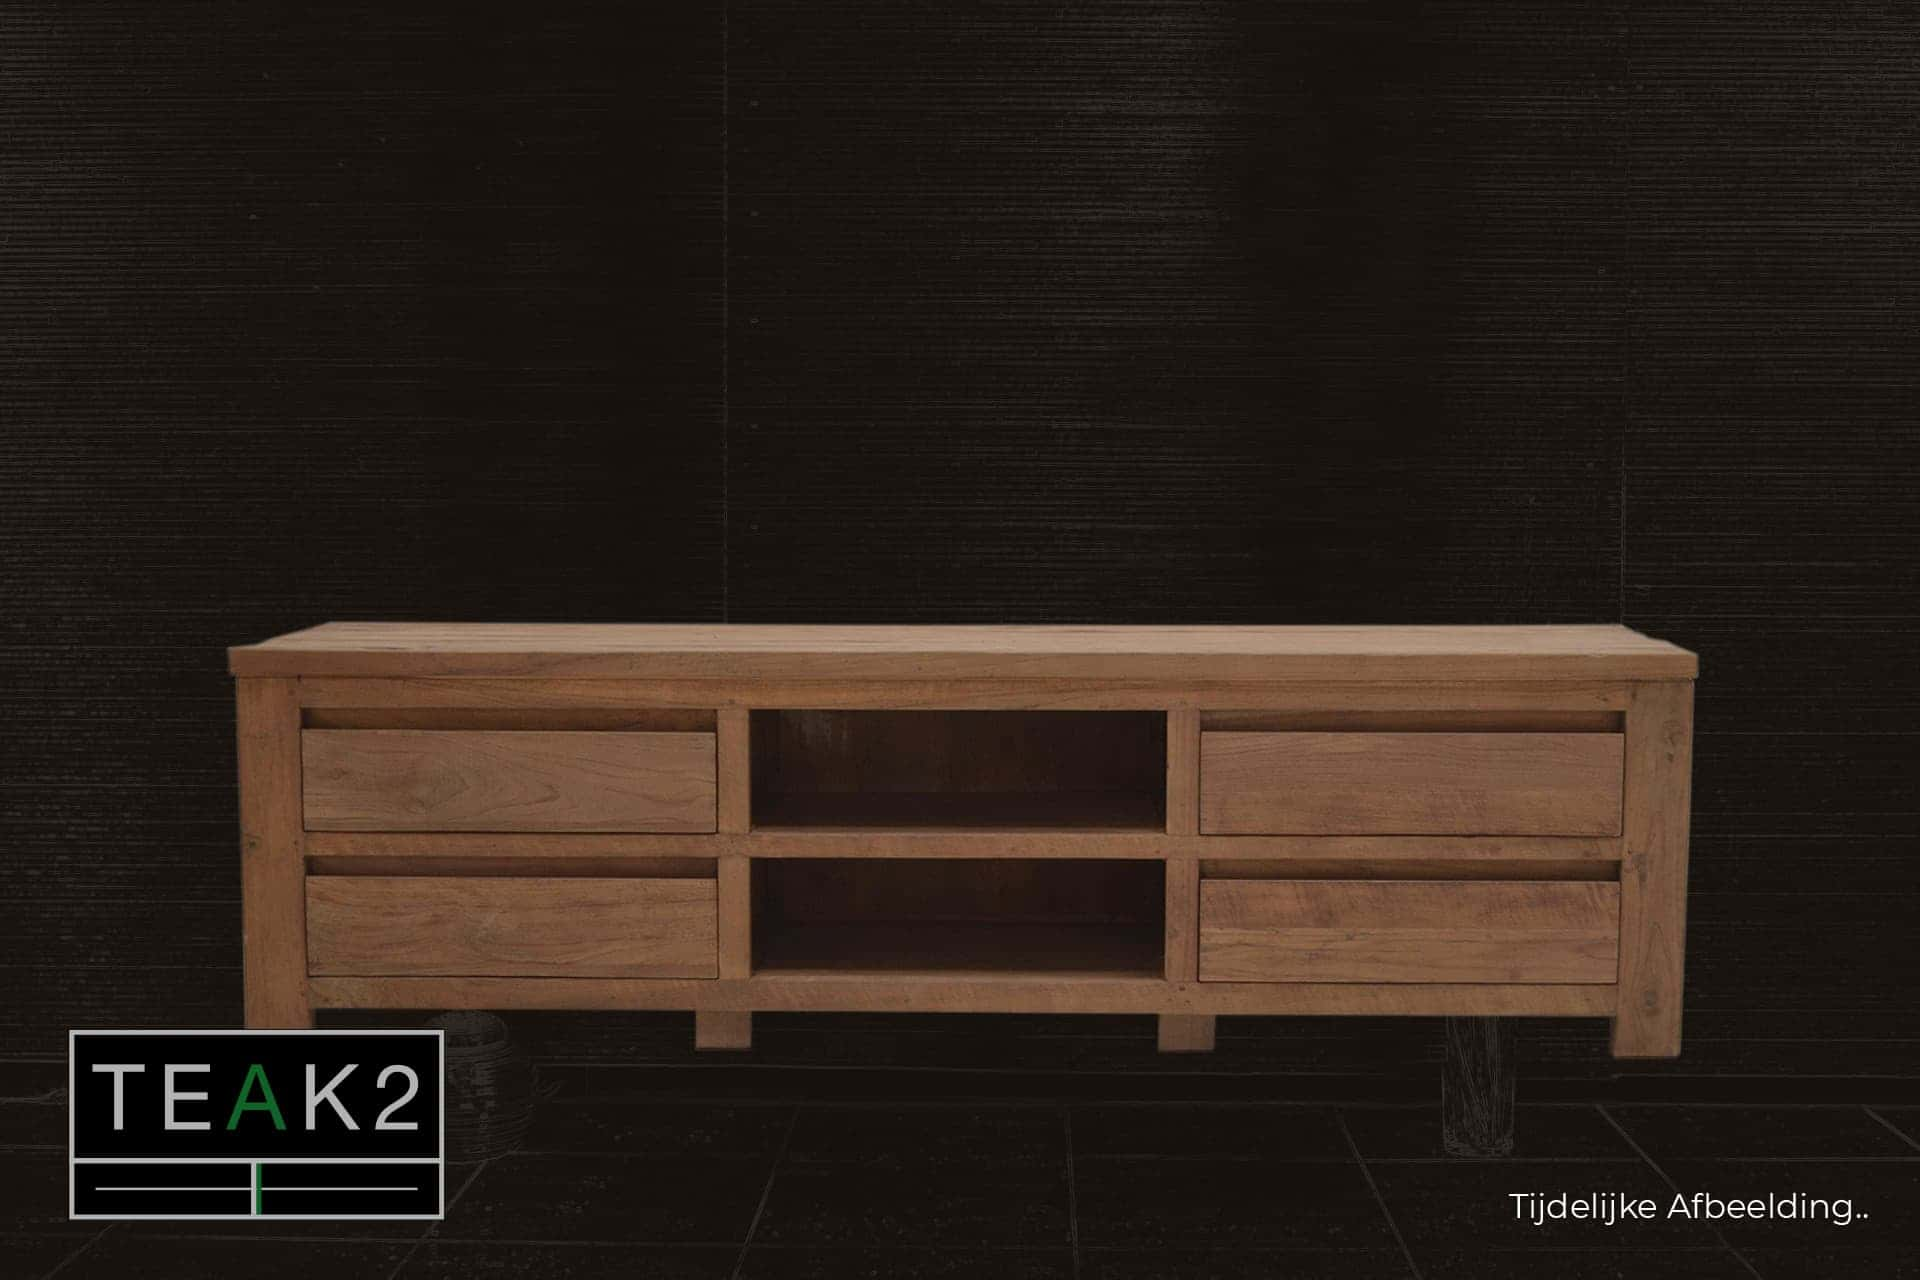 Teak Baru TV180L Old | teakhouten design Tv-meubel met lades en open middenvakken. Minimalistisch houten Tv-kast of Tv-dressoir in oud teak - TEAK2.